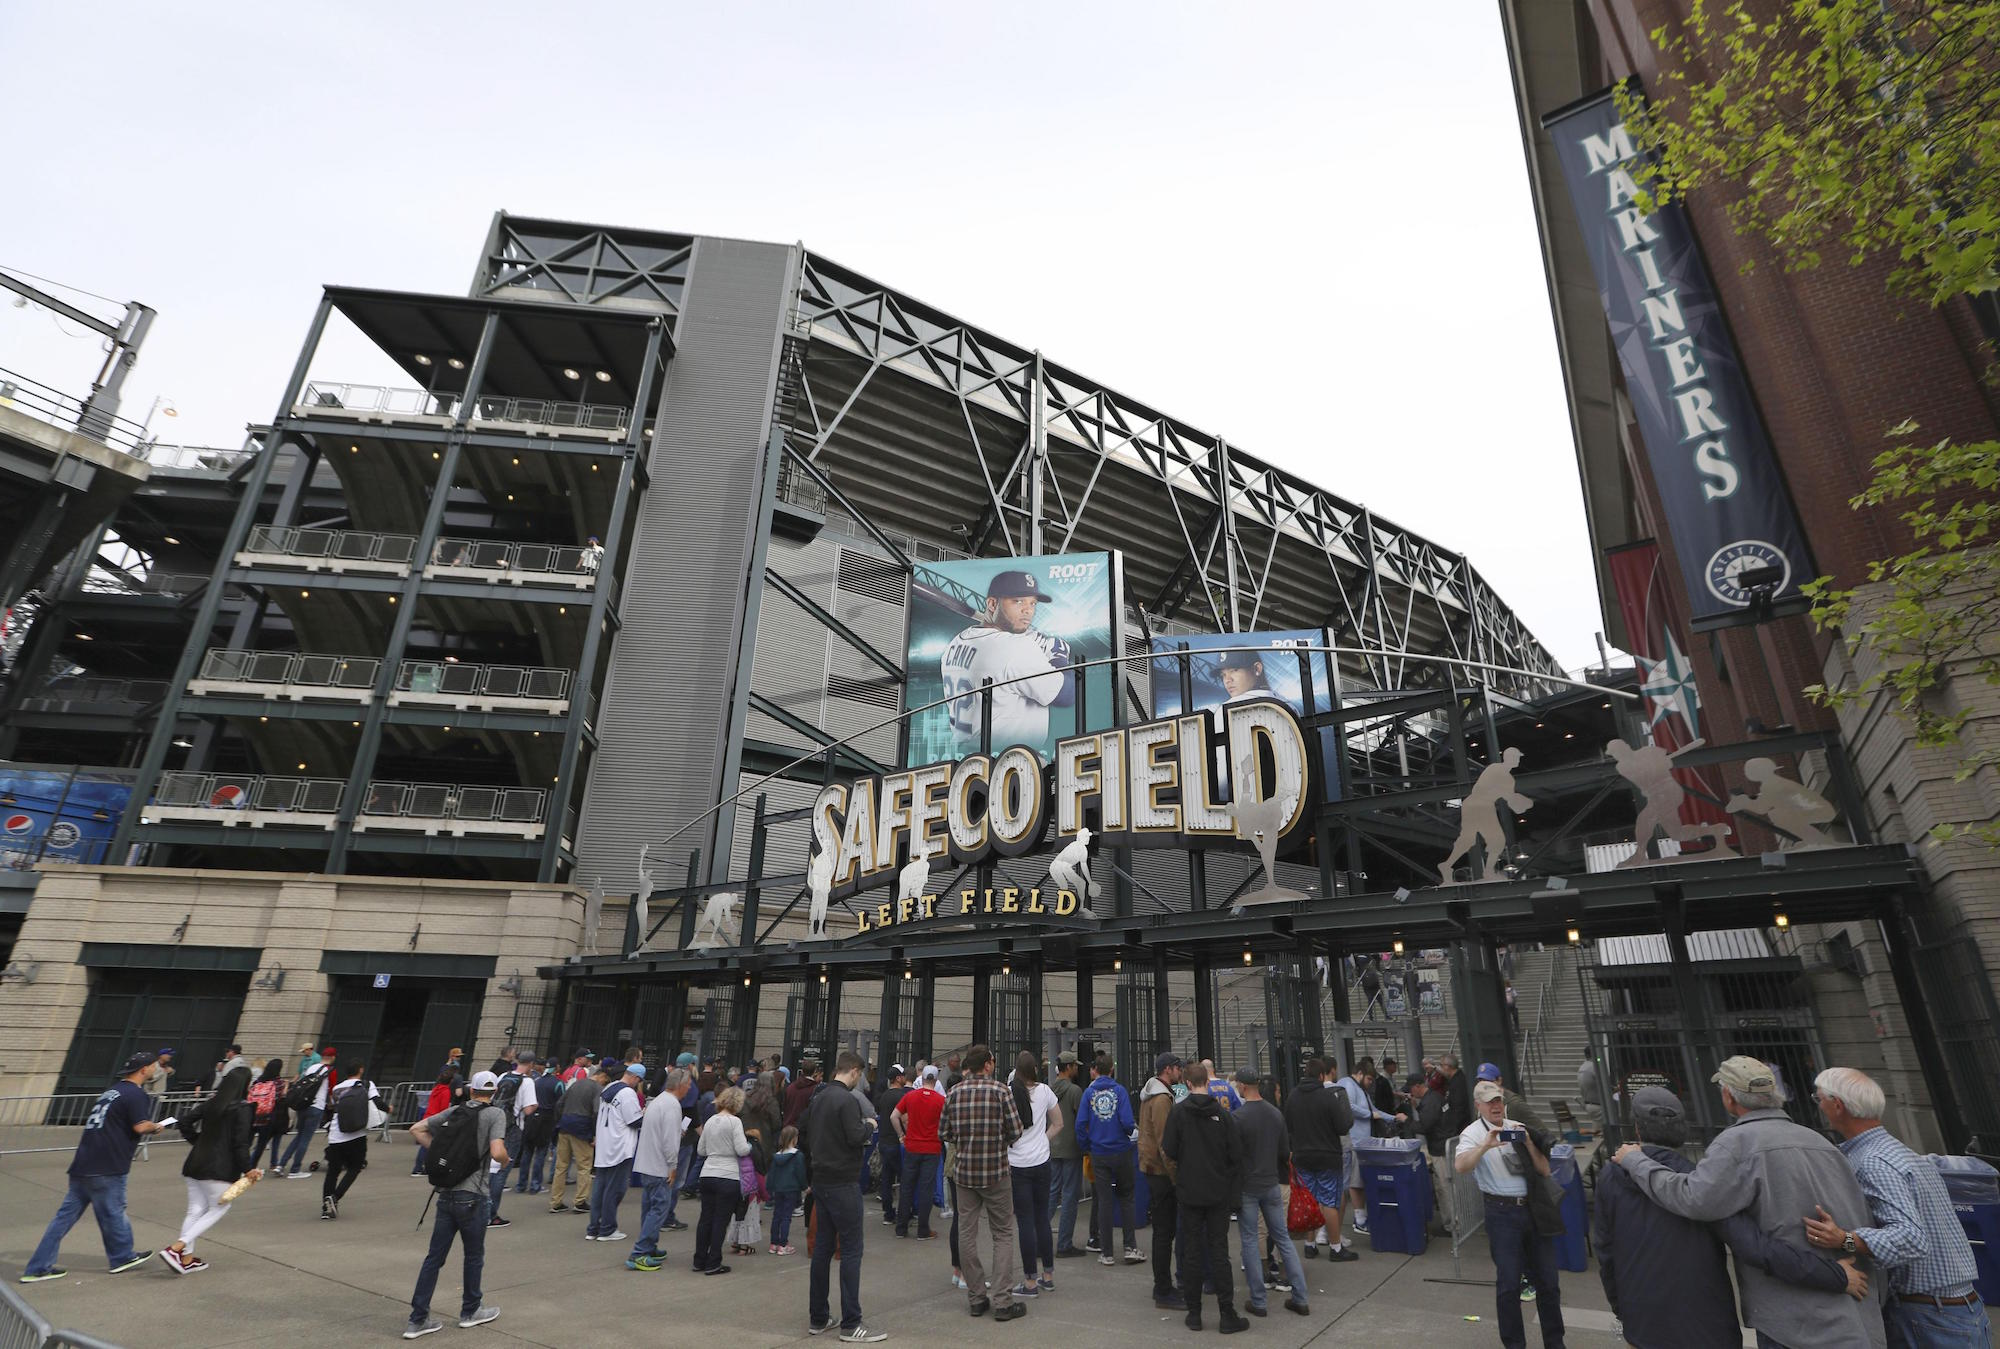 A crowd enters Safeco Field, the home stadium of the Seattle Mariners baseball club, on May 5, 2018. (Photo by Kyodo/via AP Images)